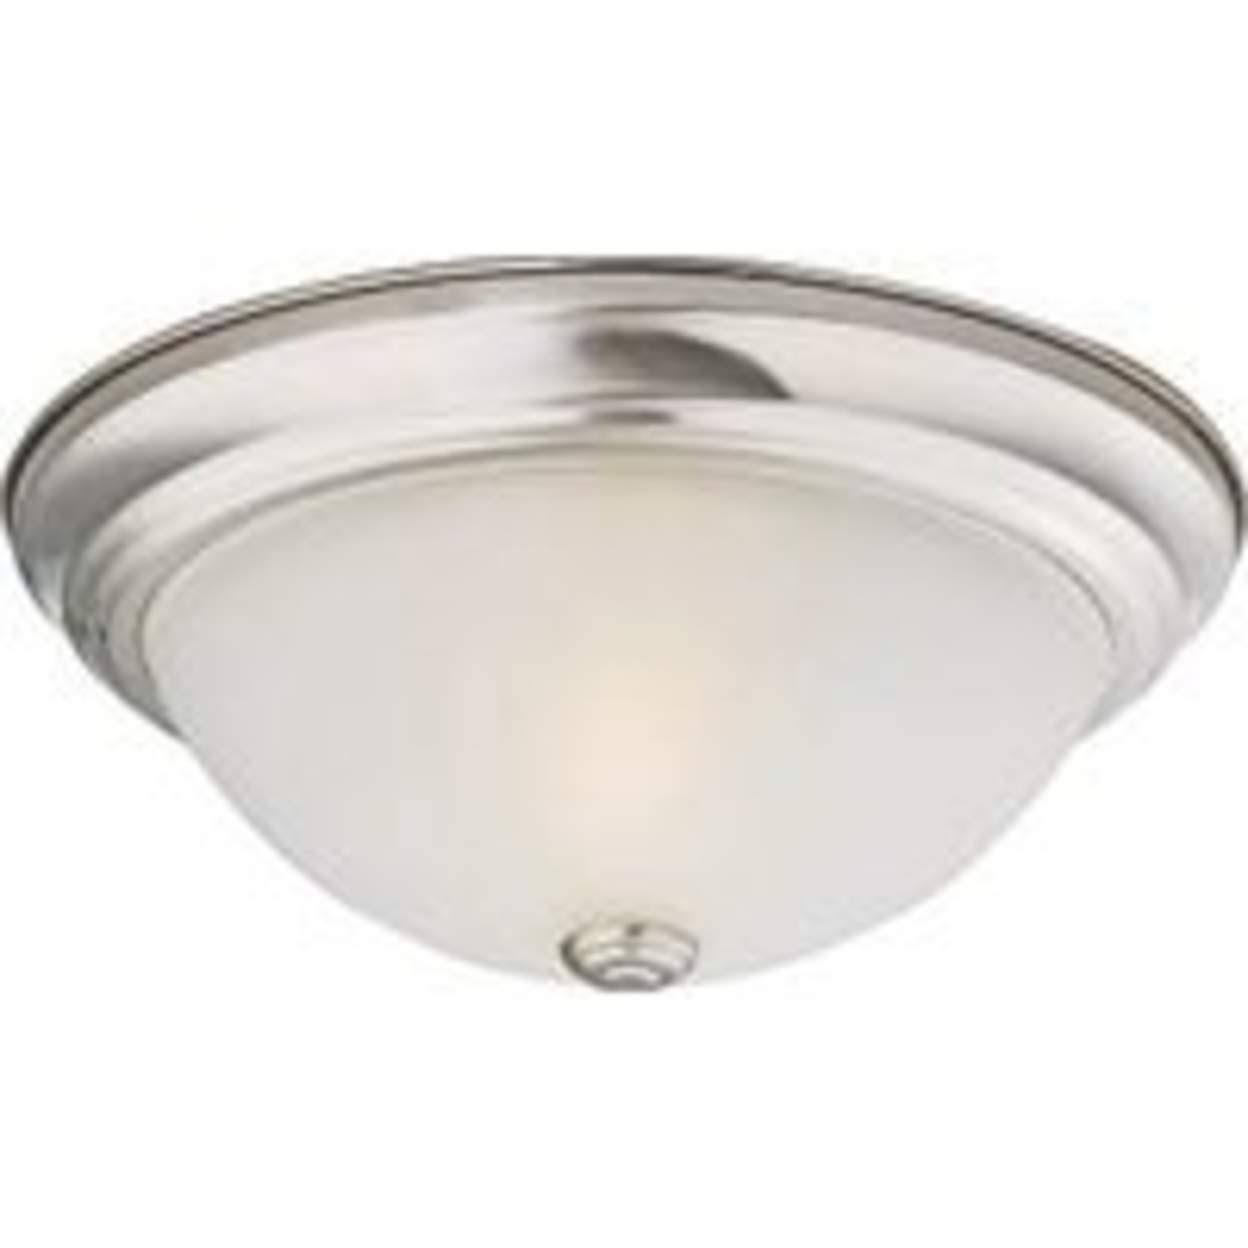 Boston Harbor Ceiling Light Fixture - Brushed Nickel